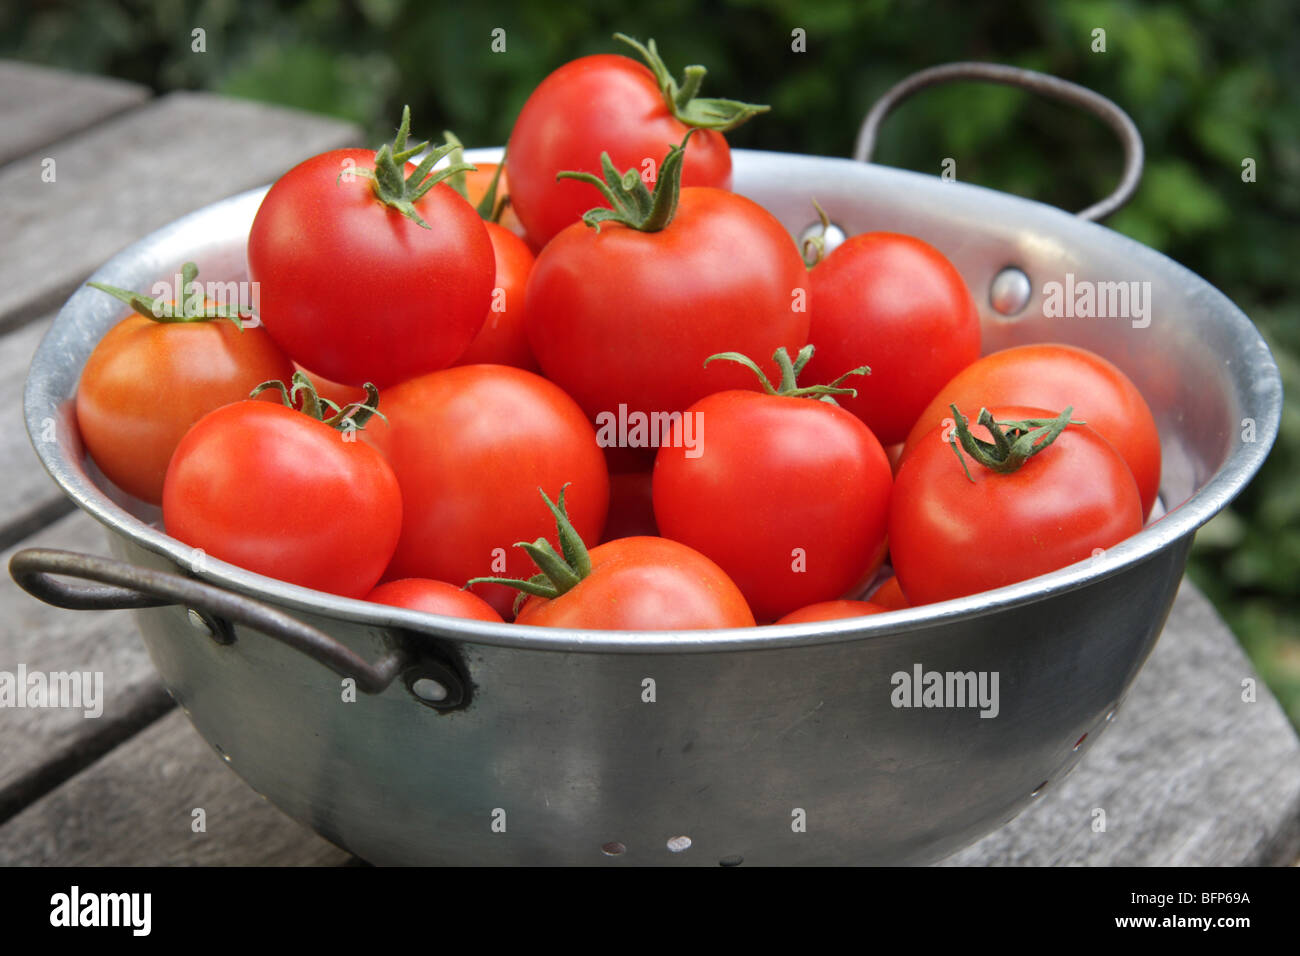 A pile of Organic tomatoes from the garden - Stock Image